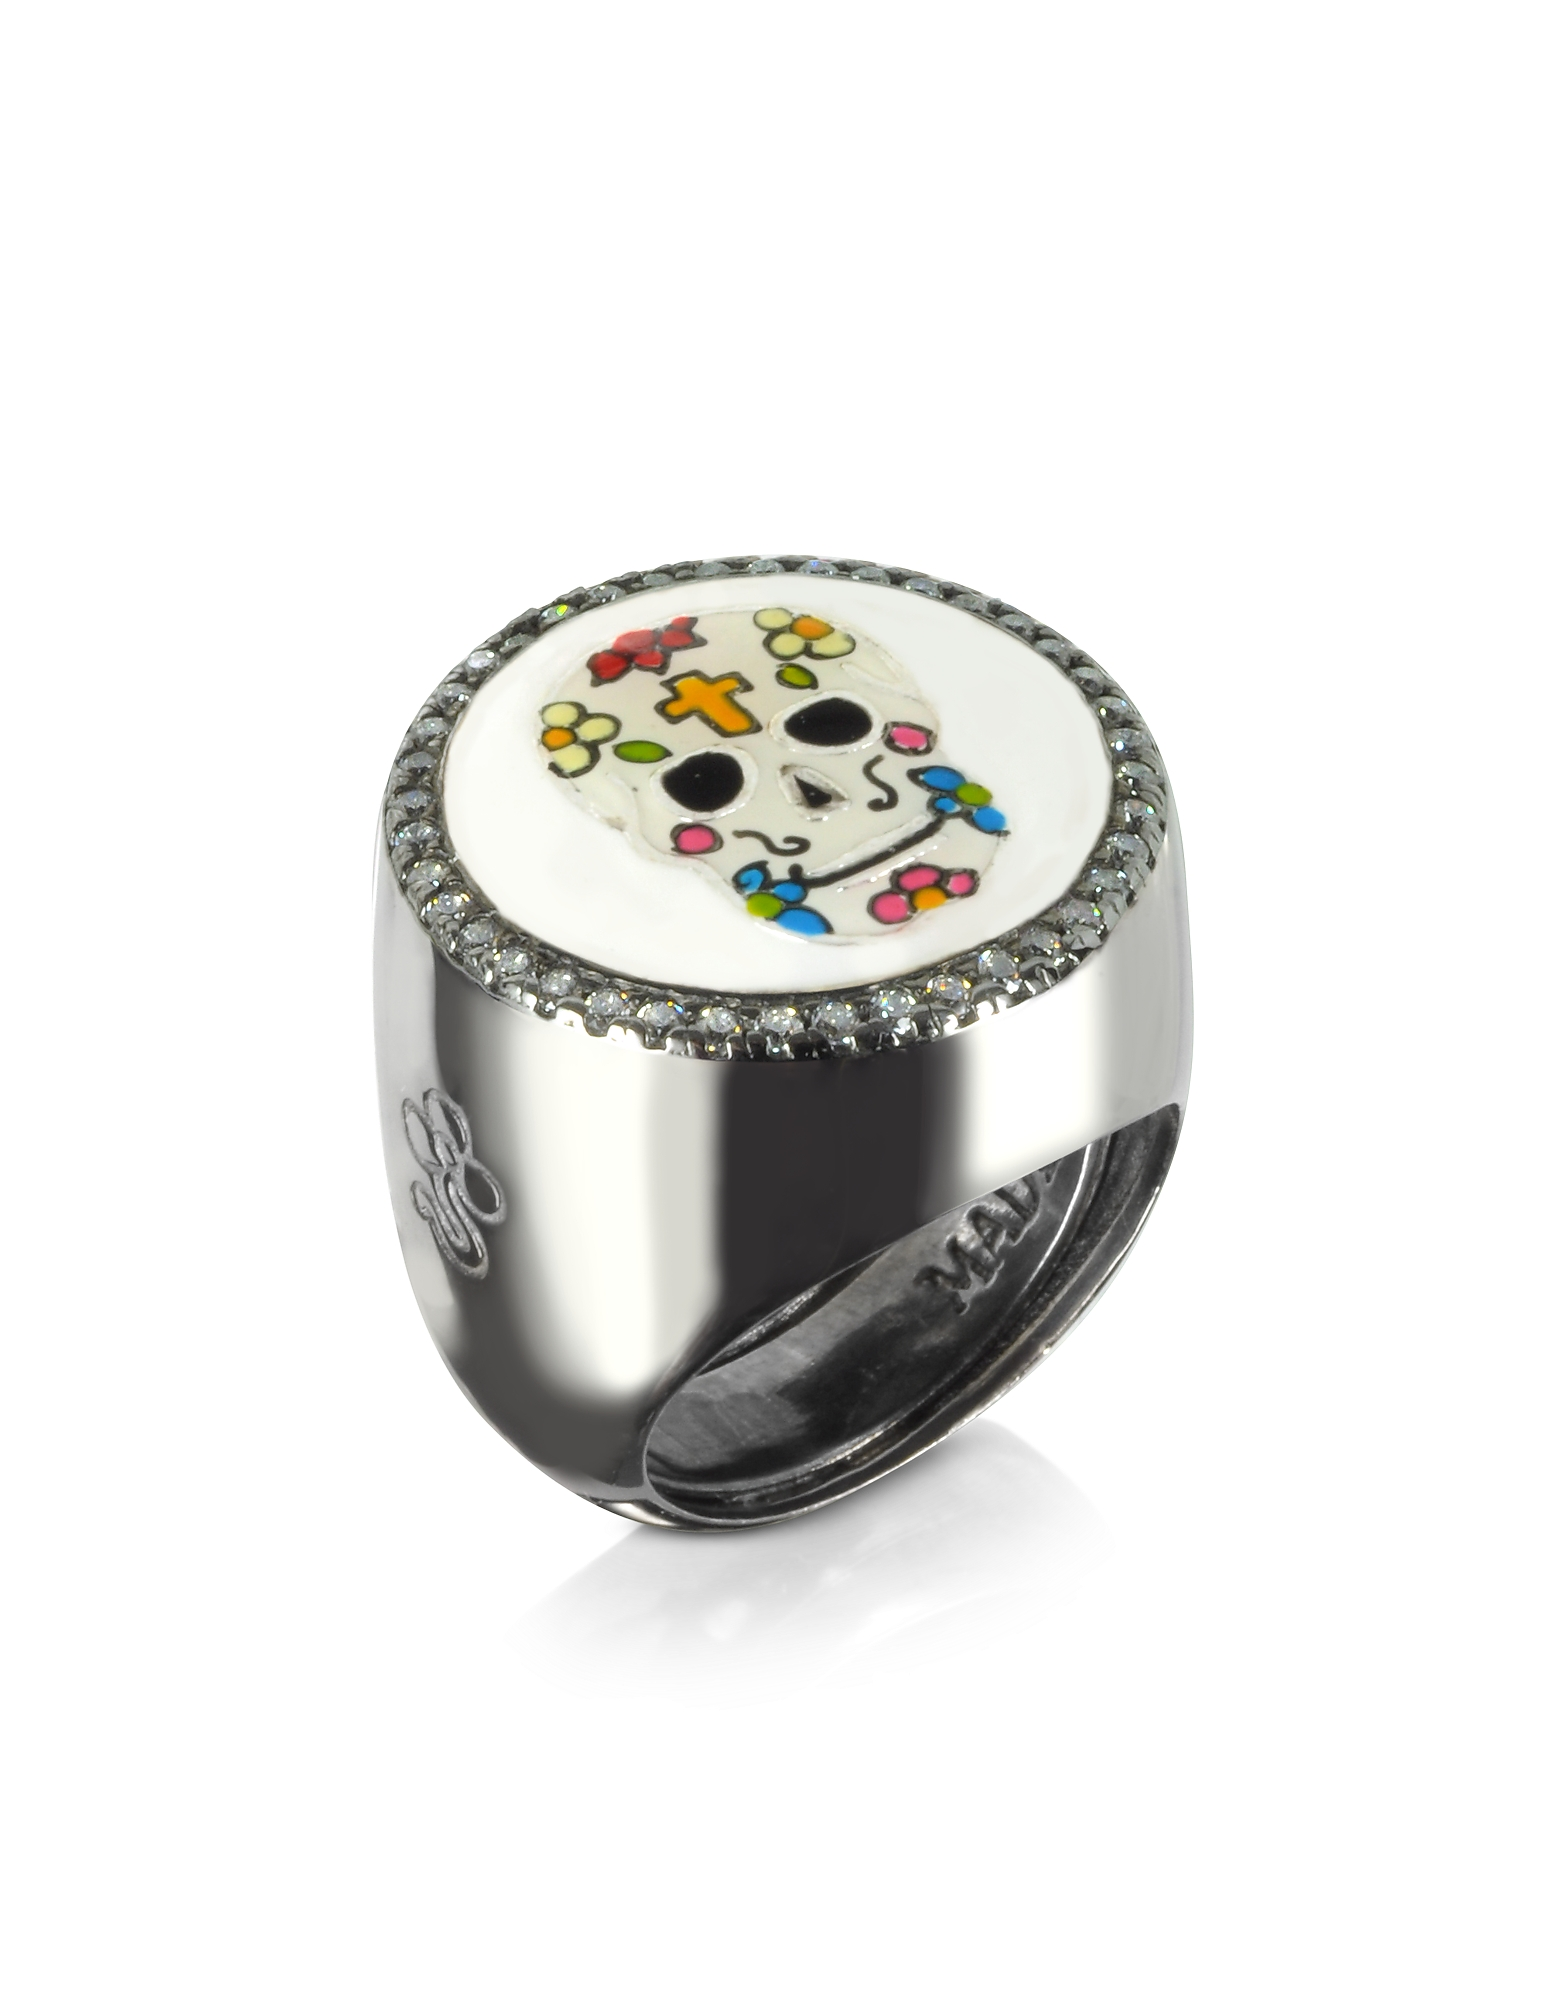 Azhar Rings, Calavera Skull Rhodium Plated Sterling Silver Adjustable Ring w/White Cubic Zirconia